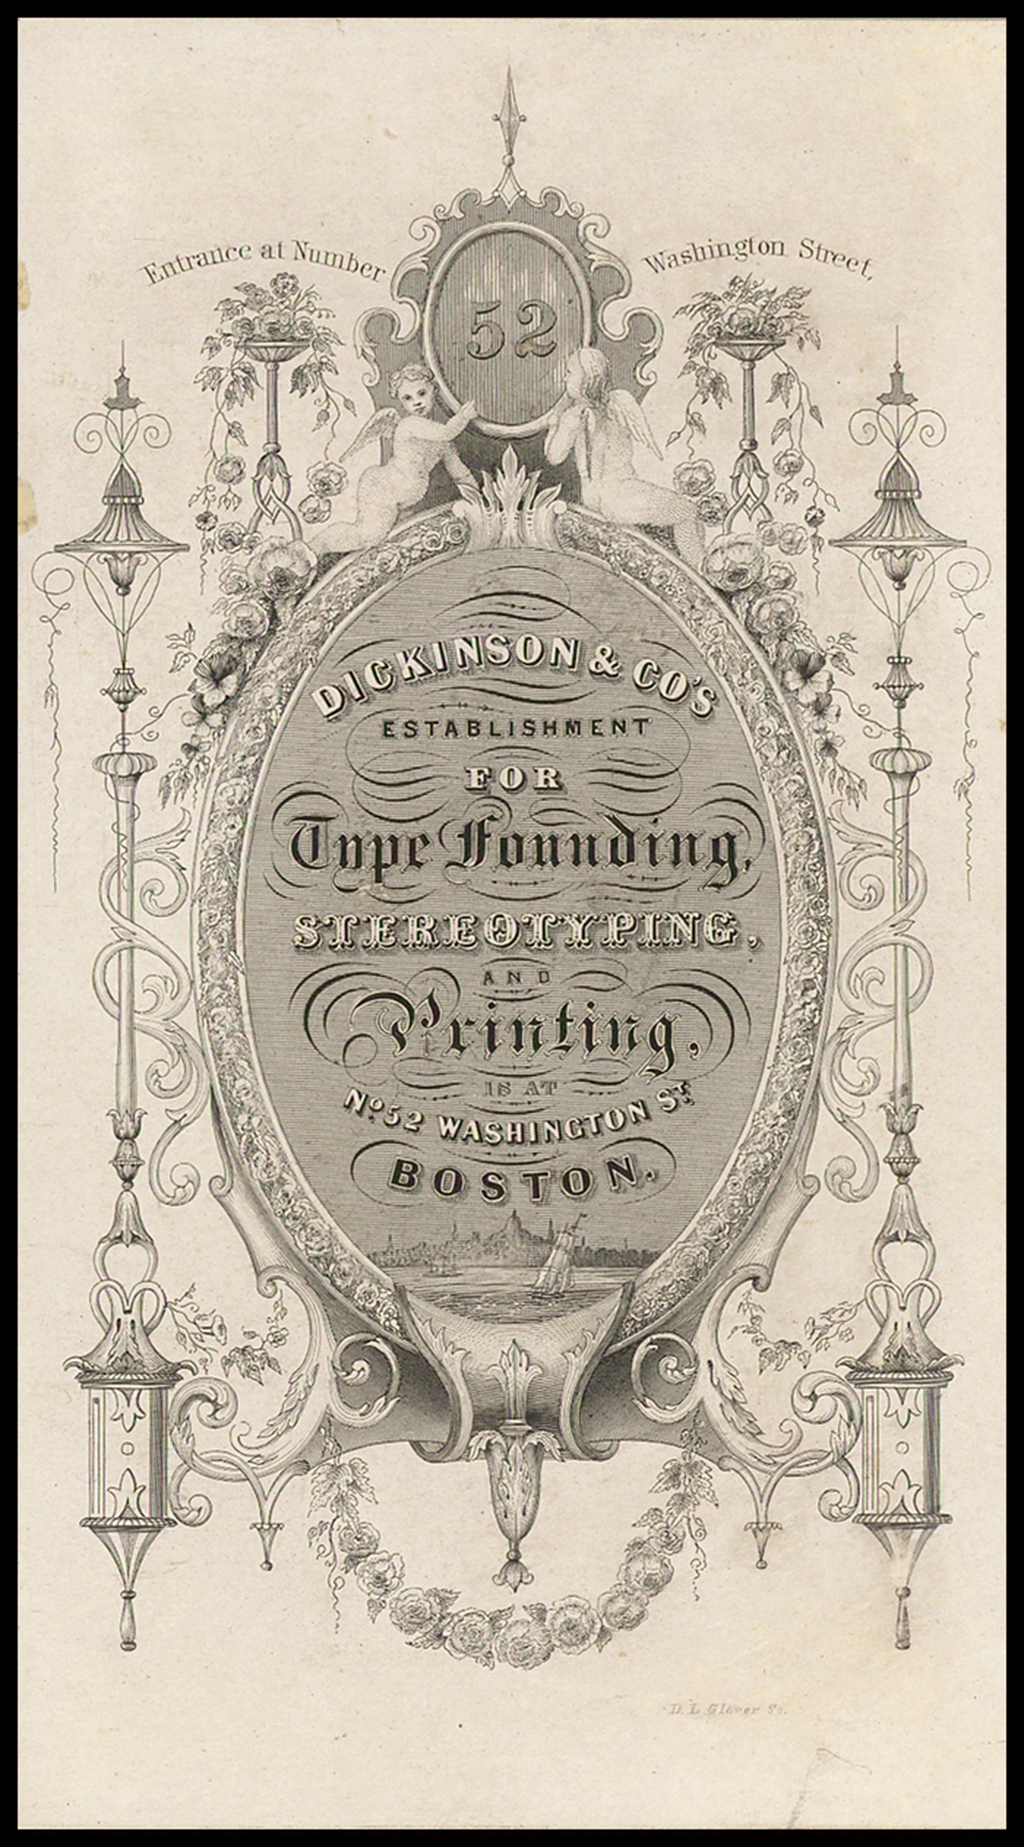 (Trade Card)  Dickinson & Co's Establishment For Type Founding, Stereotyping, and Printing Is at No. 52 Washington Street, Boston. By Samuel Nelson Dickinson